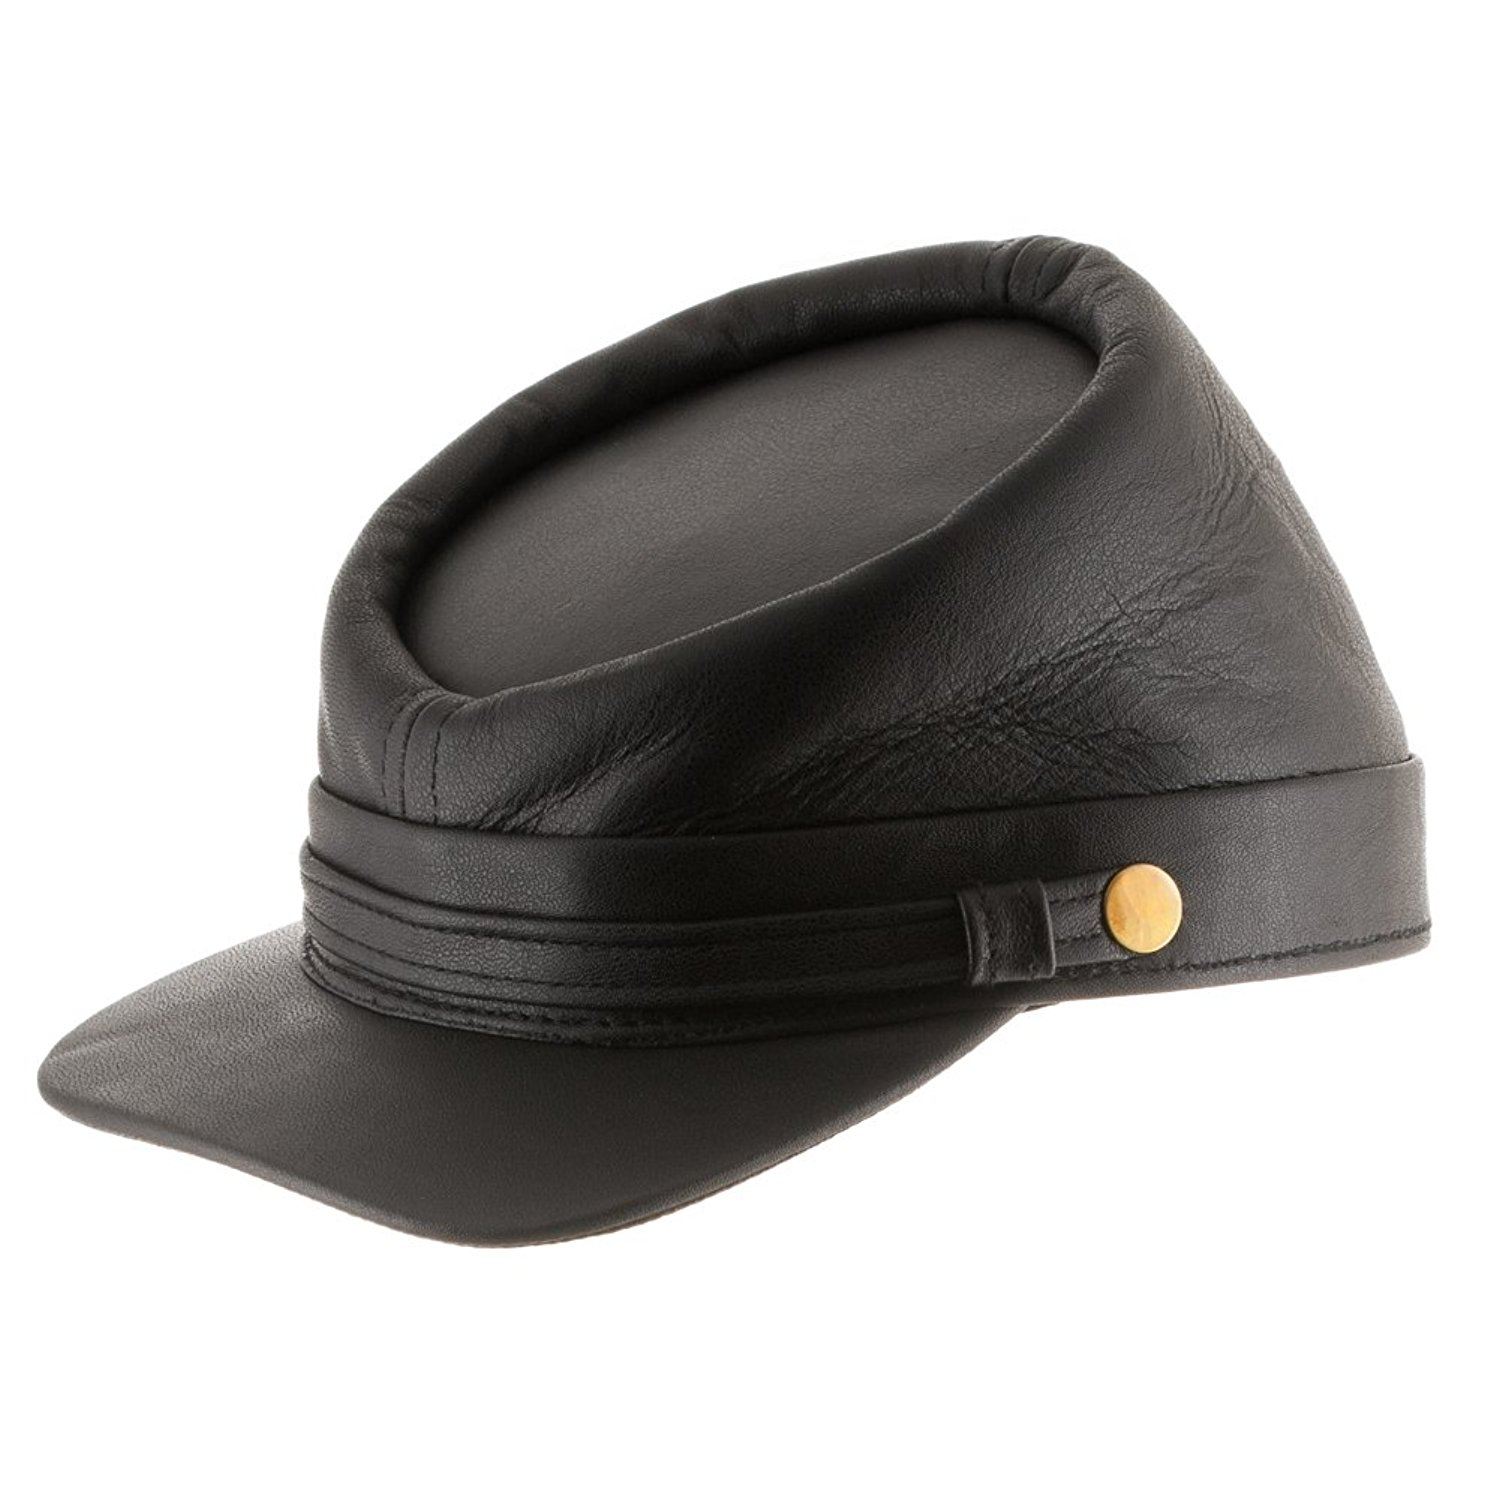 Get Quotations · Ultrafino Genuine Leather Civil War Kepi Cap Army Military  Soldier Cadet Hat 8f7680f72053